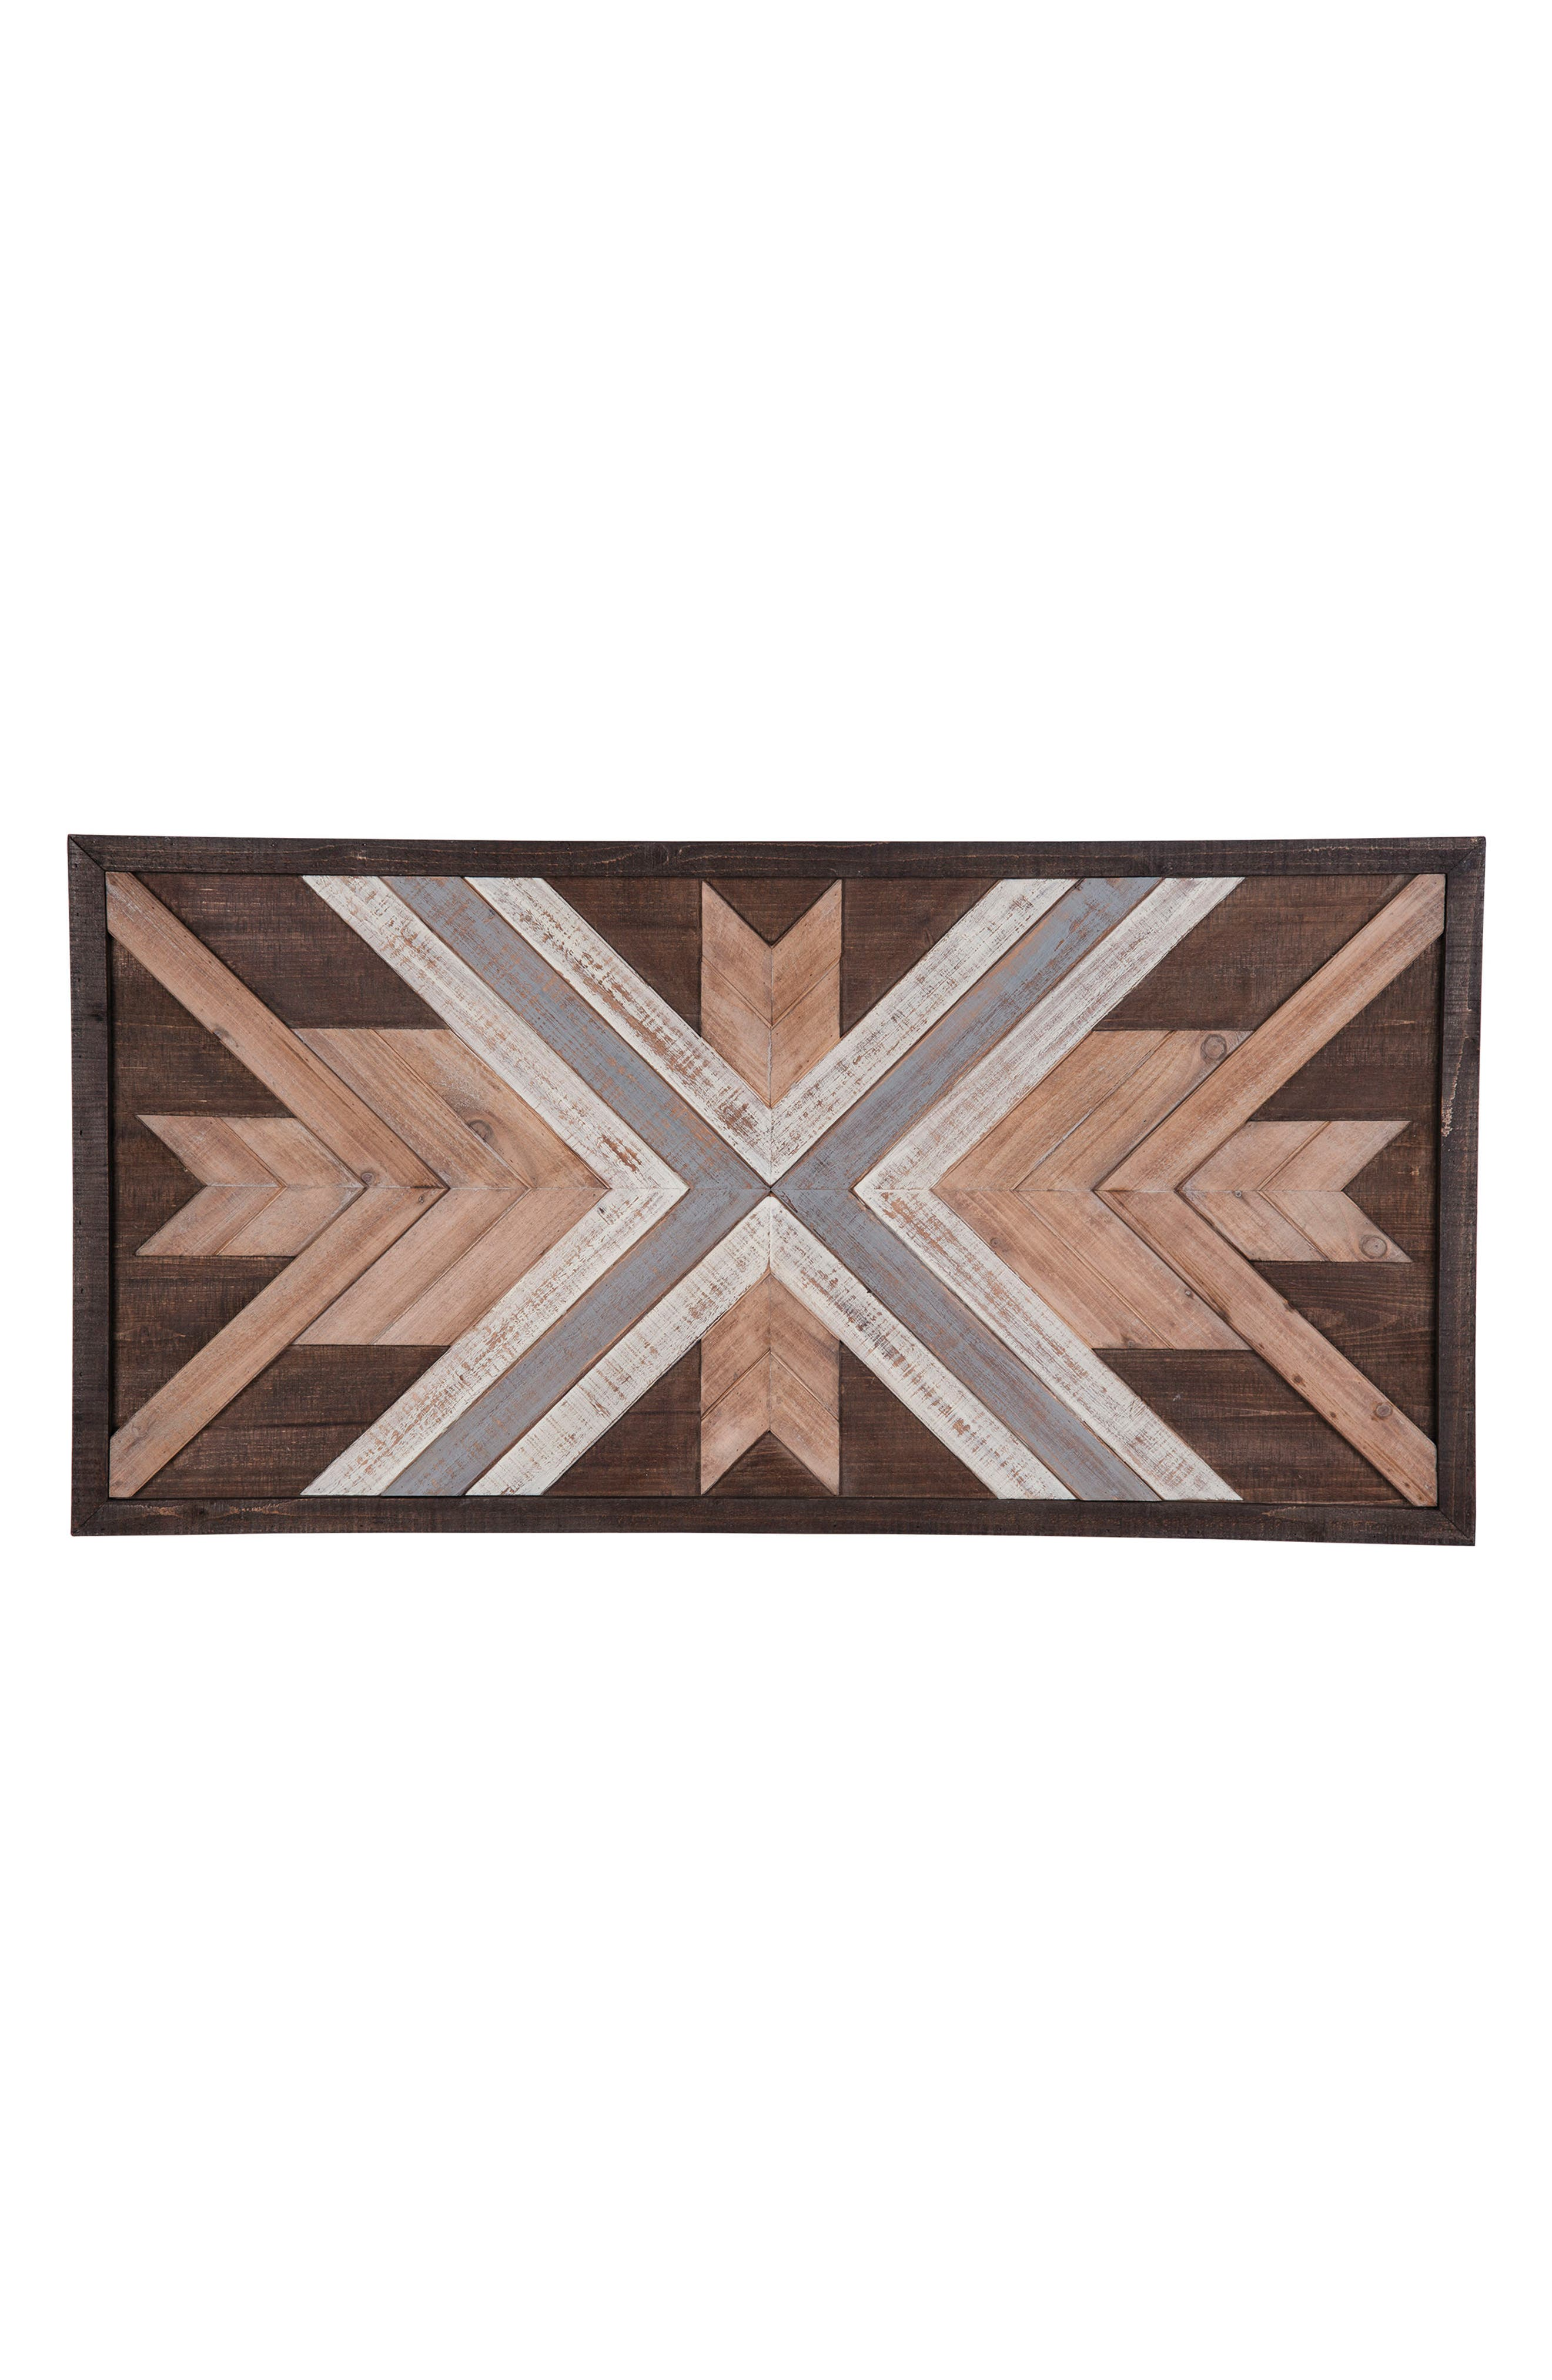 Slatted Wood Wall Art,                             Main thumbnail 1, color,                             Wood